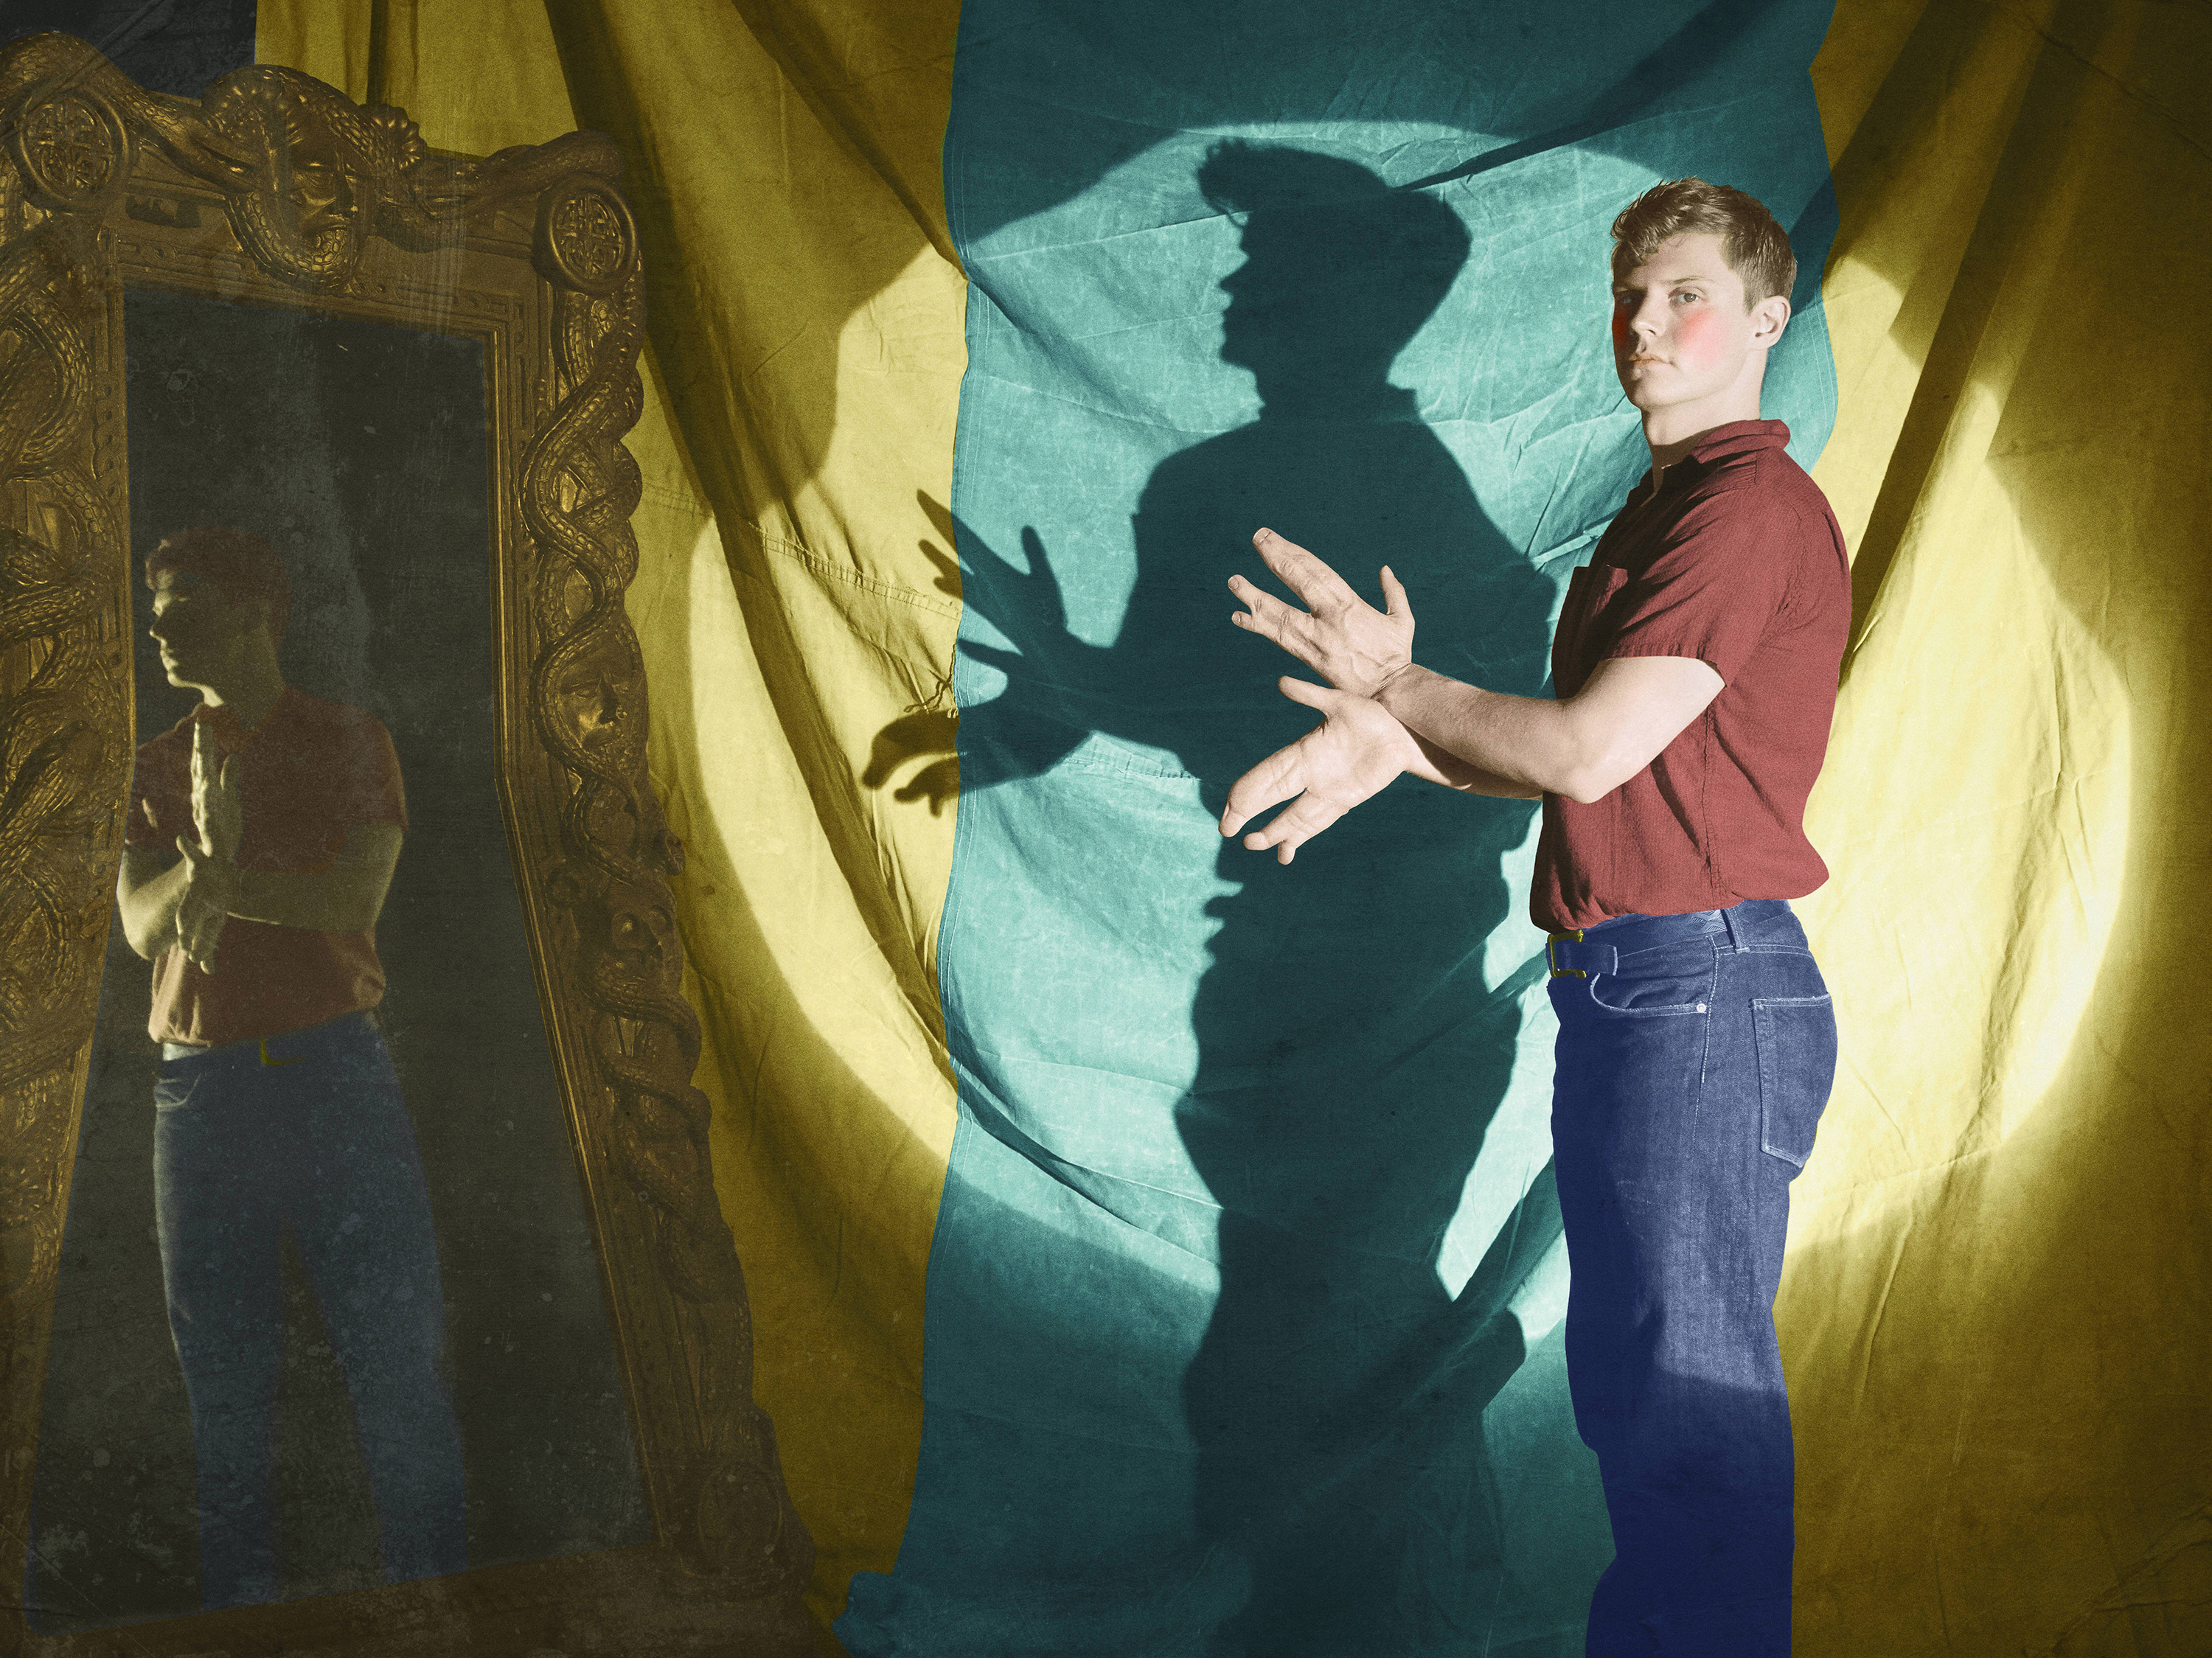 American Horror Story Freakshow - New character posters and explanation of Twisty the Creepy ...